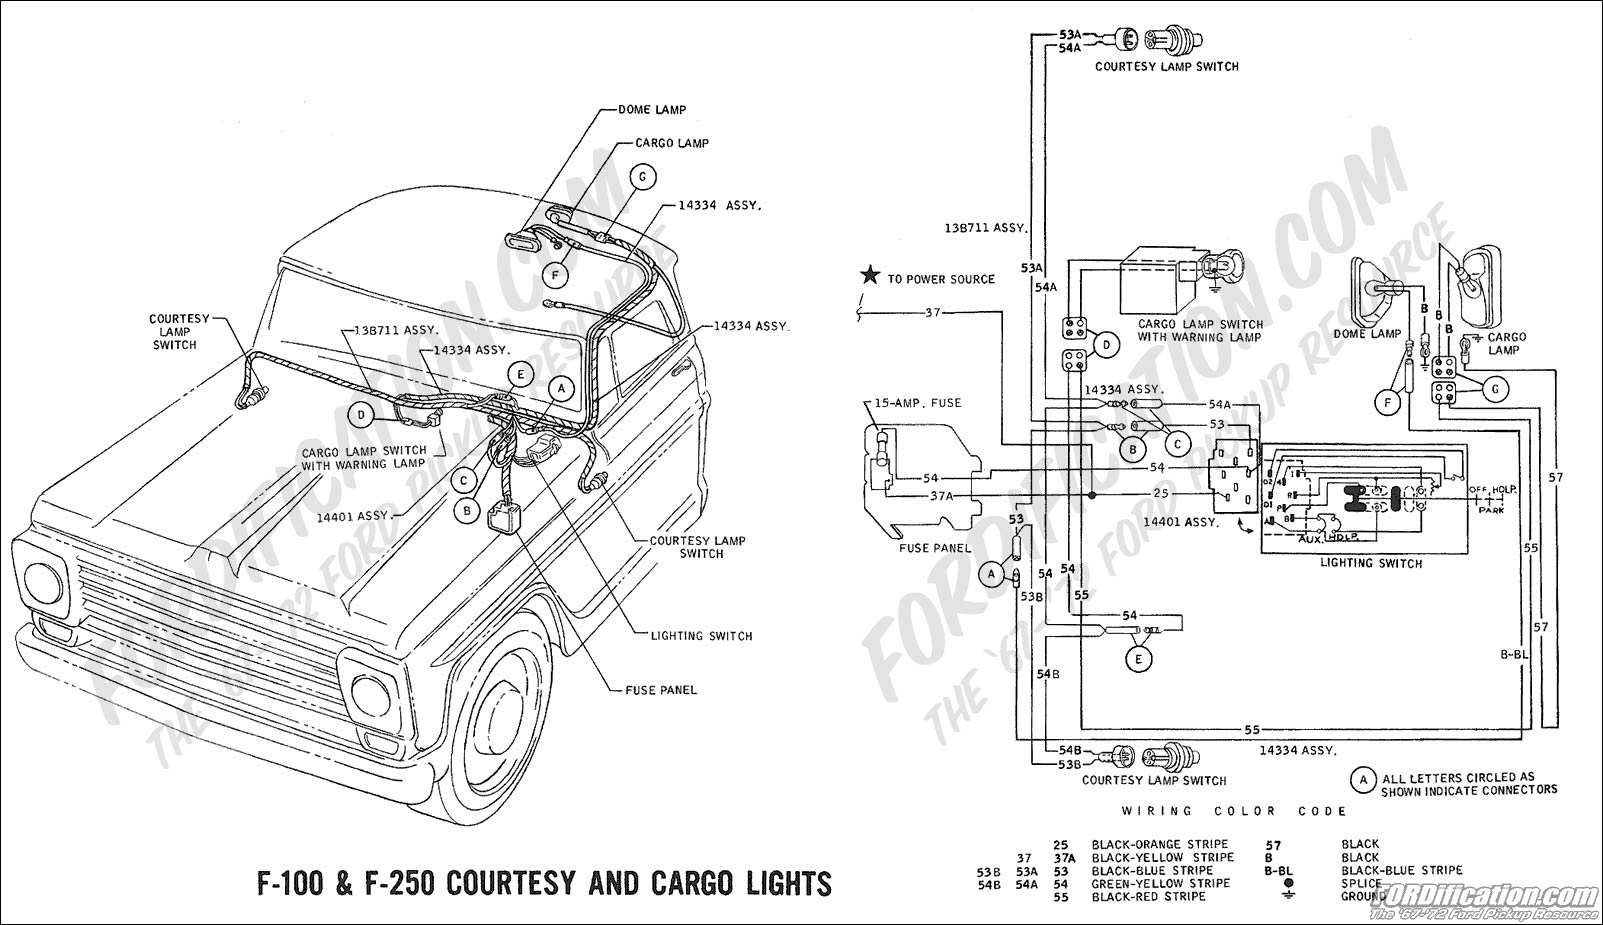 1966 ford f100 wiring schematic 1966 image wiring 1966 ford f100 wiring diagram 1966 image wiring on 1966 ford f100 wiring schematic